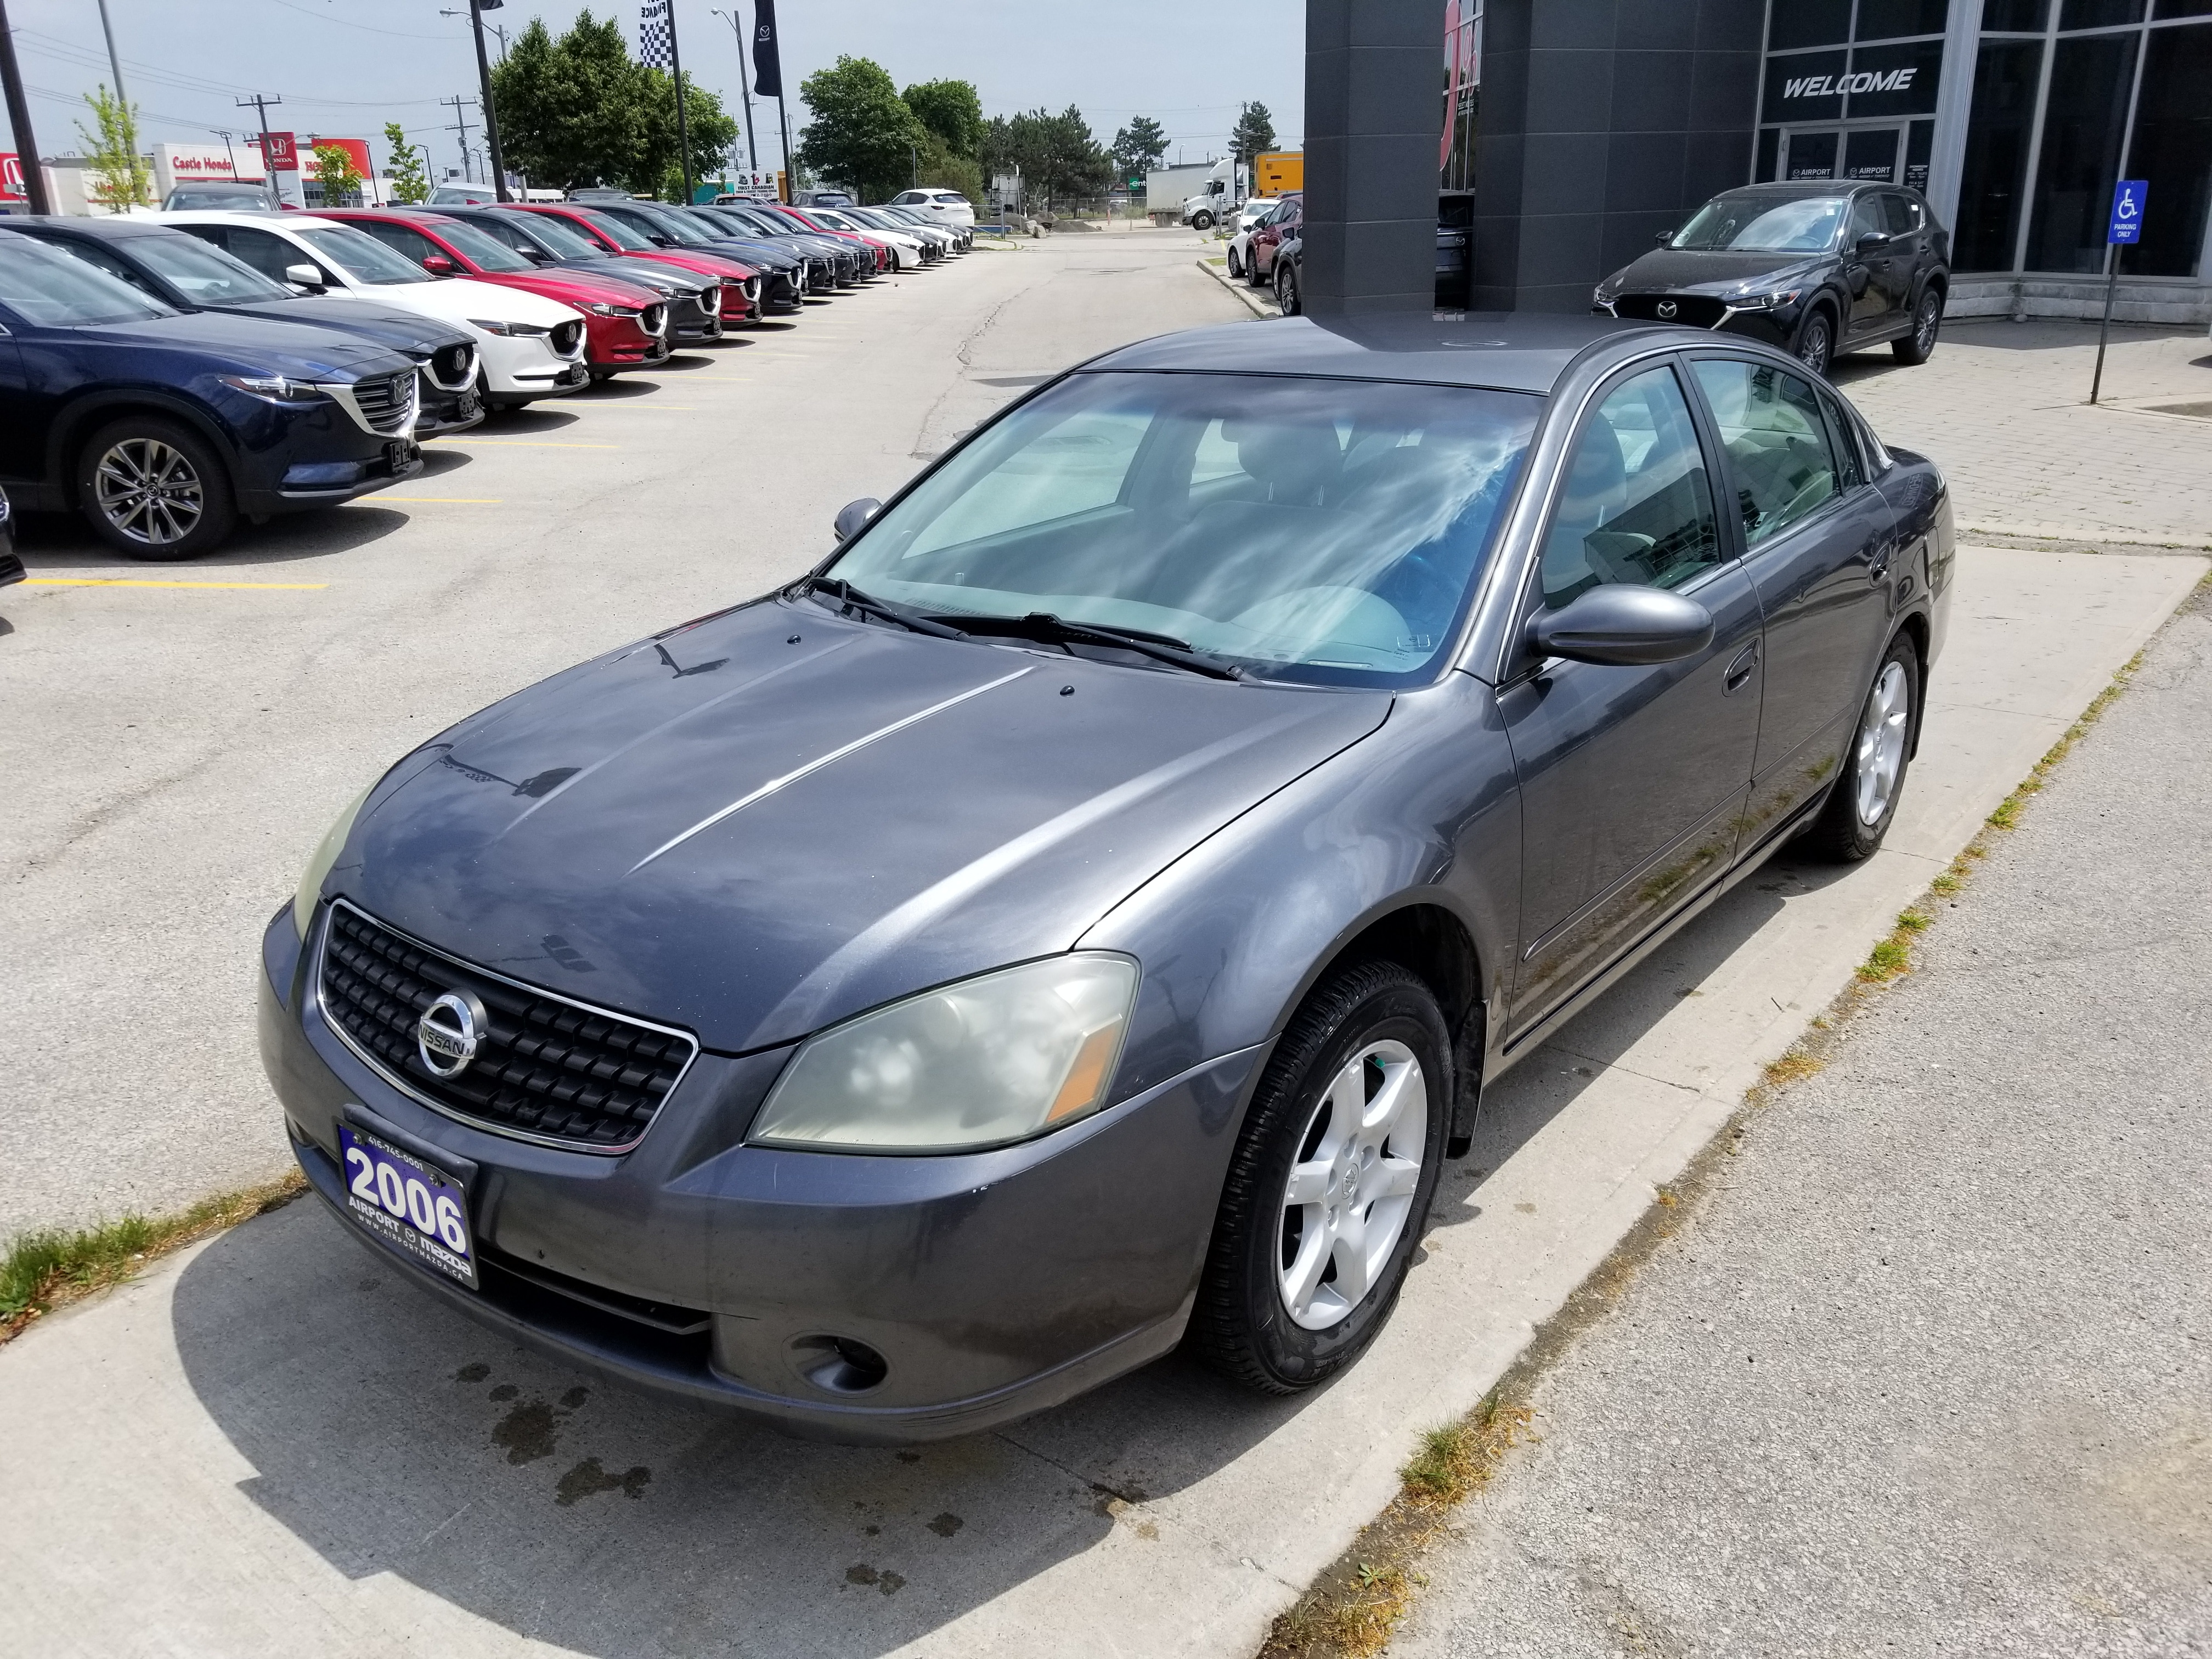 2006 Nissan Altima For Sale >> Used 2006 Nissan Altima For Sale At Airport Mazda Of Toronto Vin